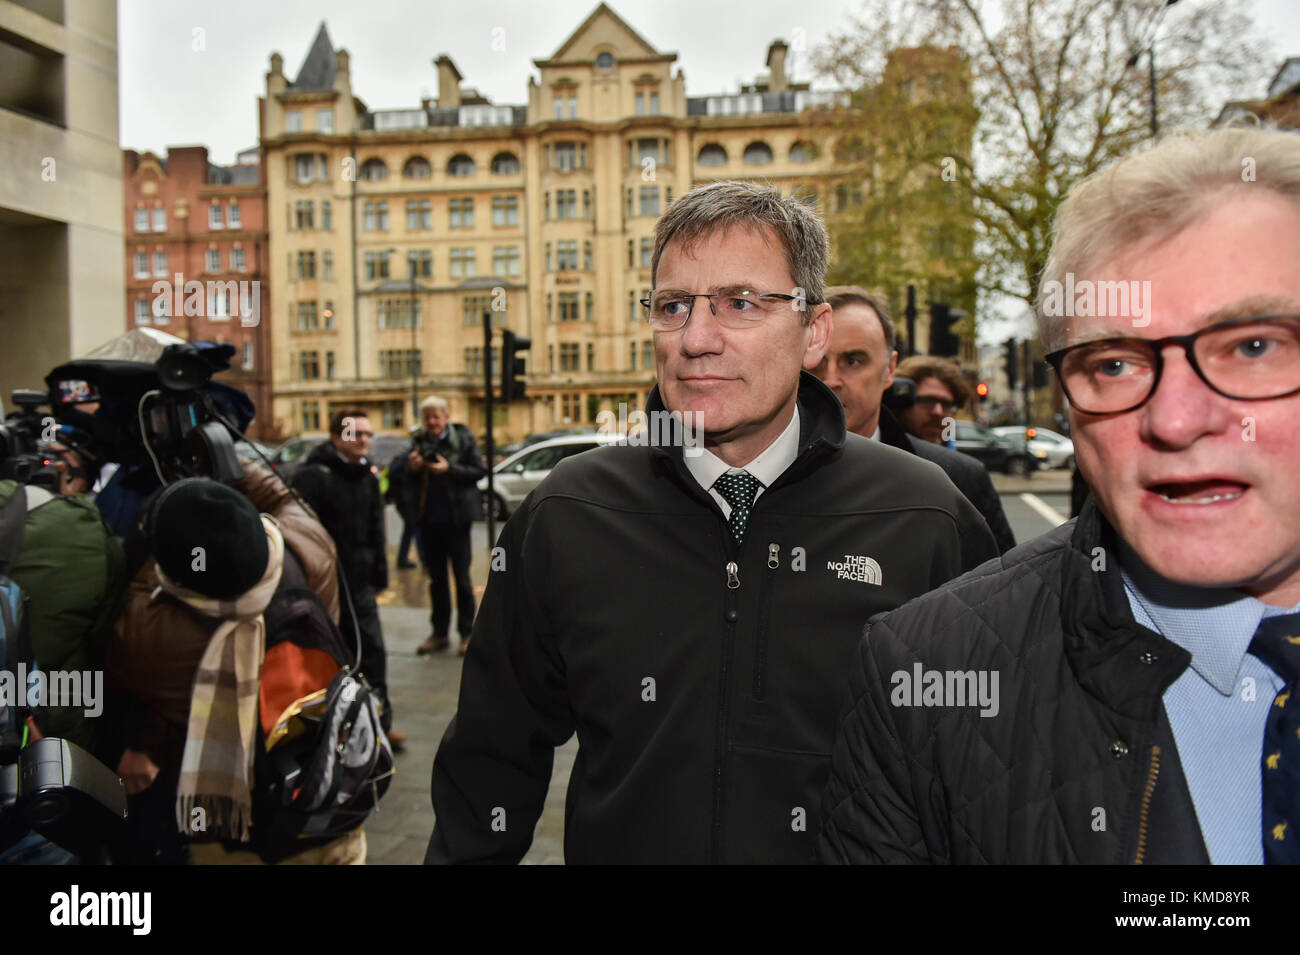 London, United Kingdom. 7th December 2017. Assistant Chief Constable Marcus Beale, attached to West Midlands Police, - Stock Image